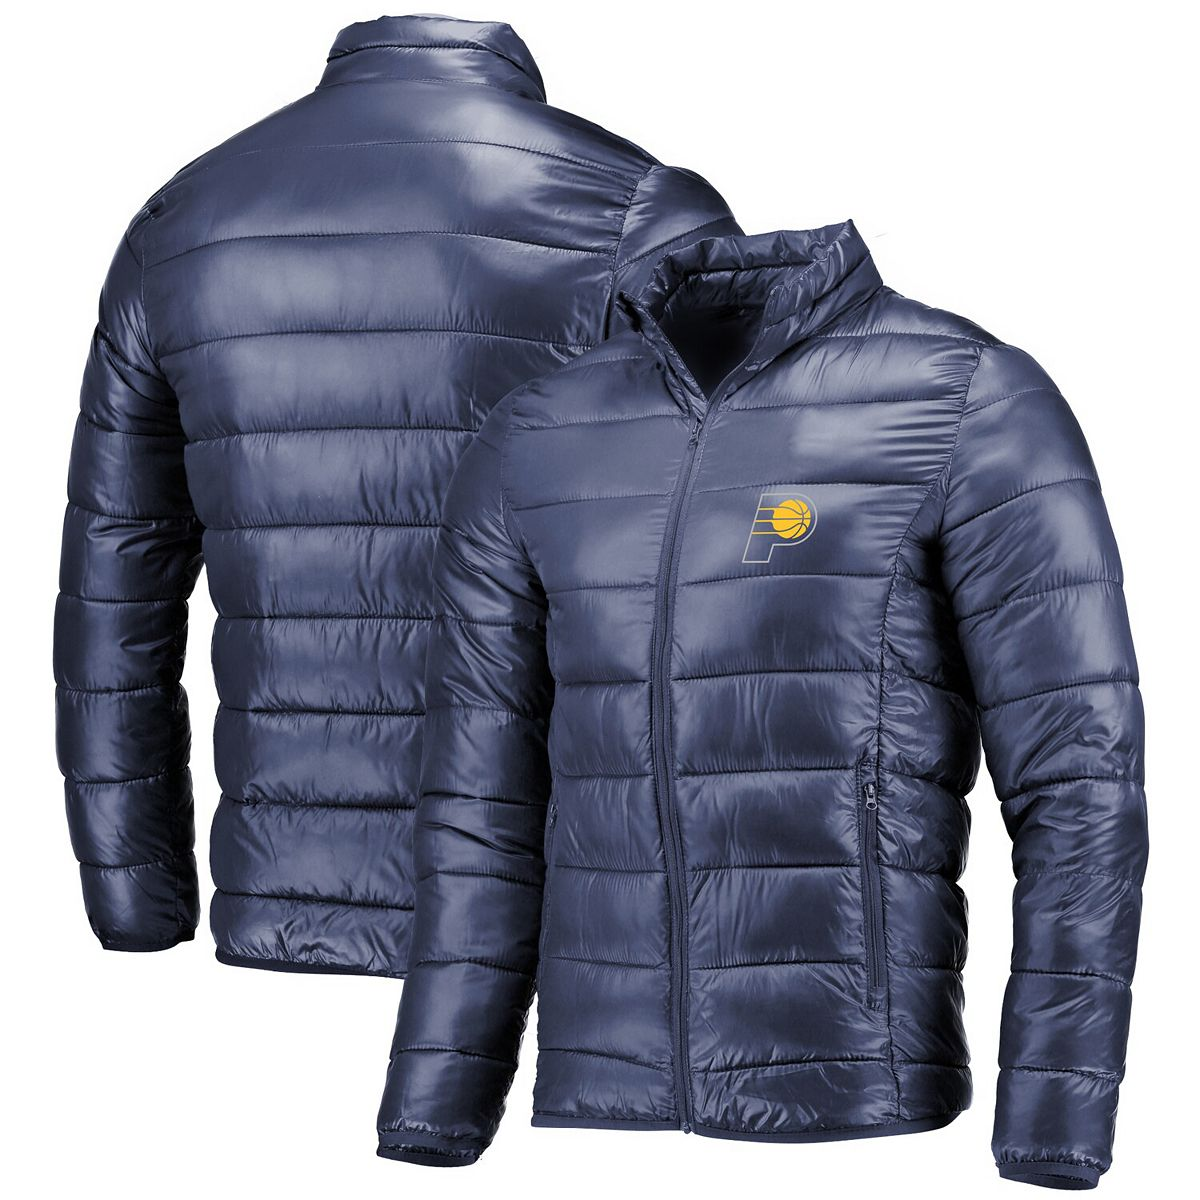 Men's Fanatics Branded Navy Indiana Pacers Polyester Filled Puffer Jacket vNPMc